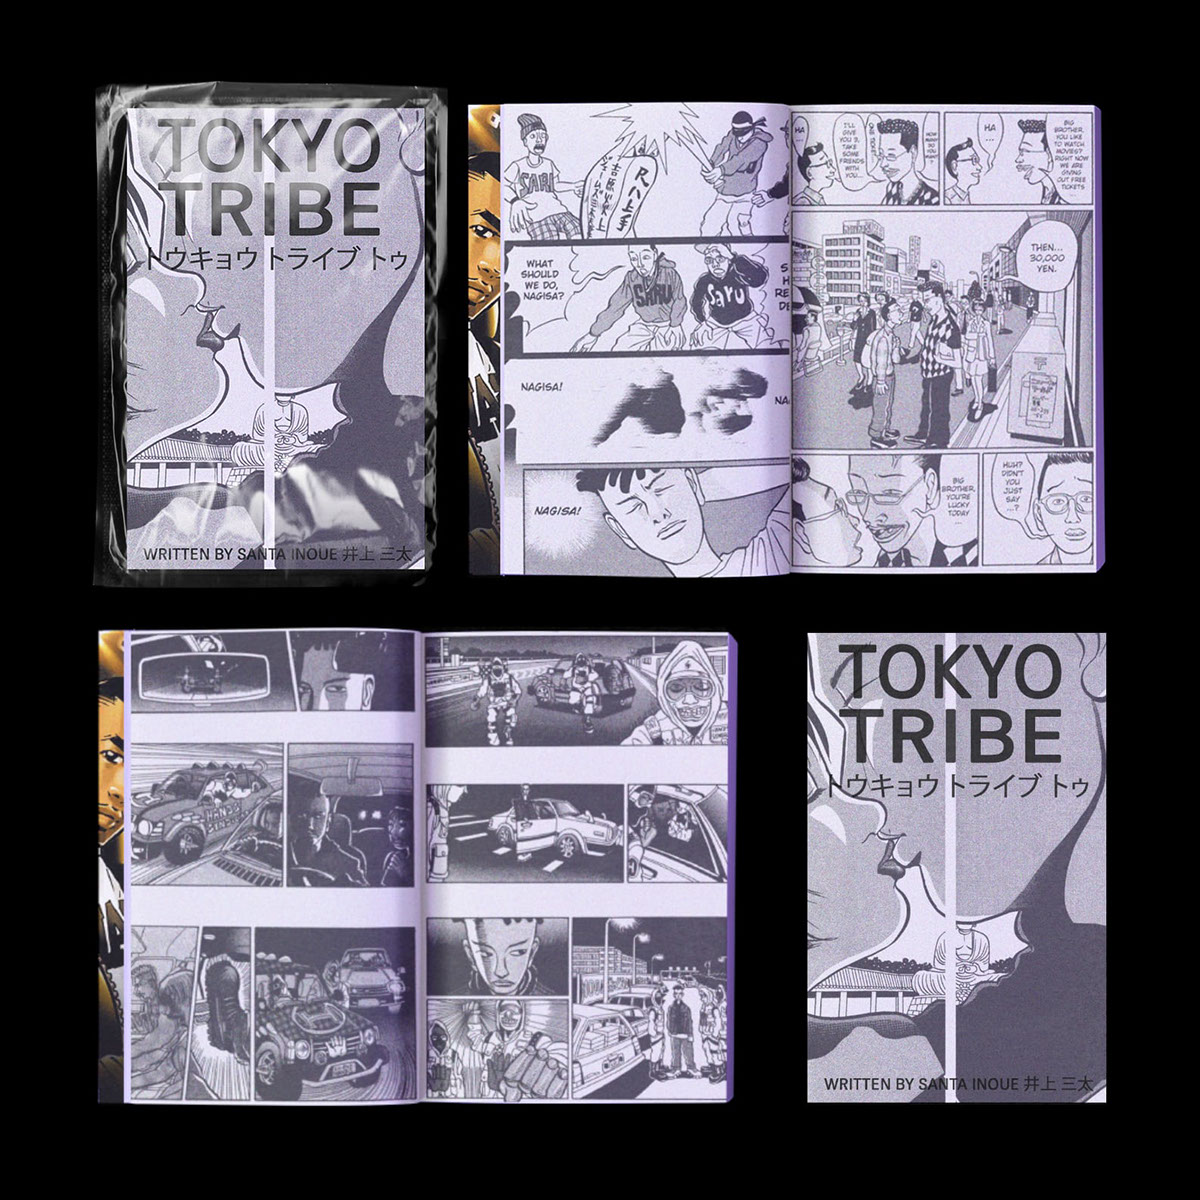 TOKYO TRIBE – Editorial on Student Show